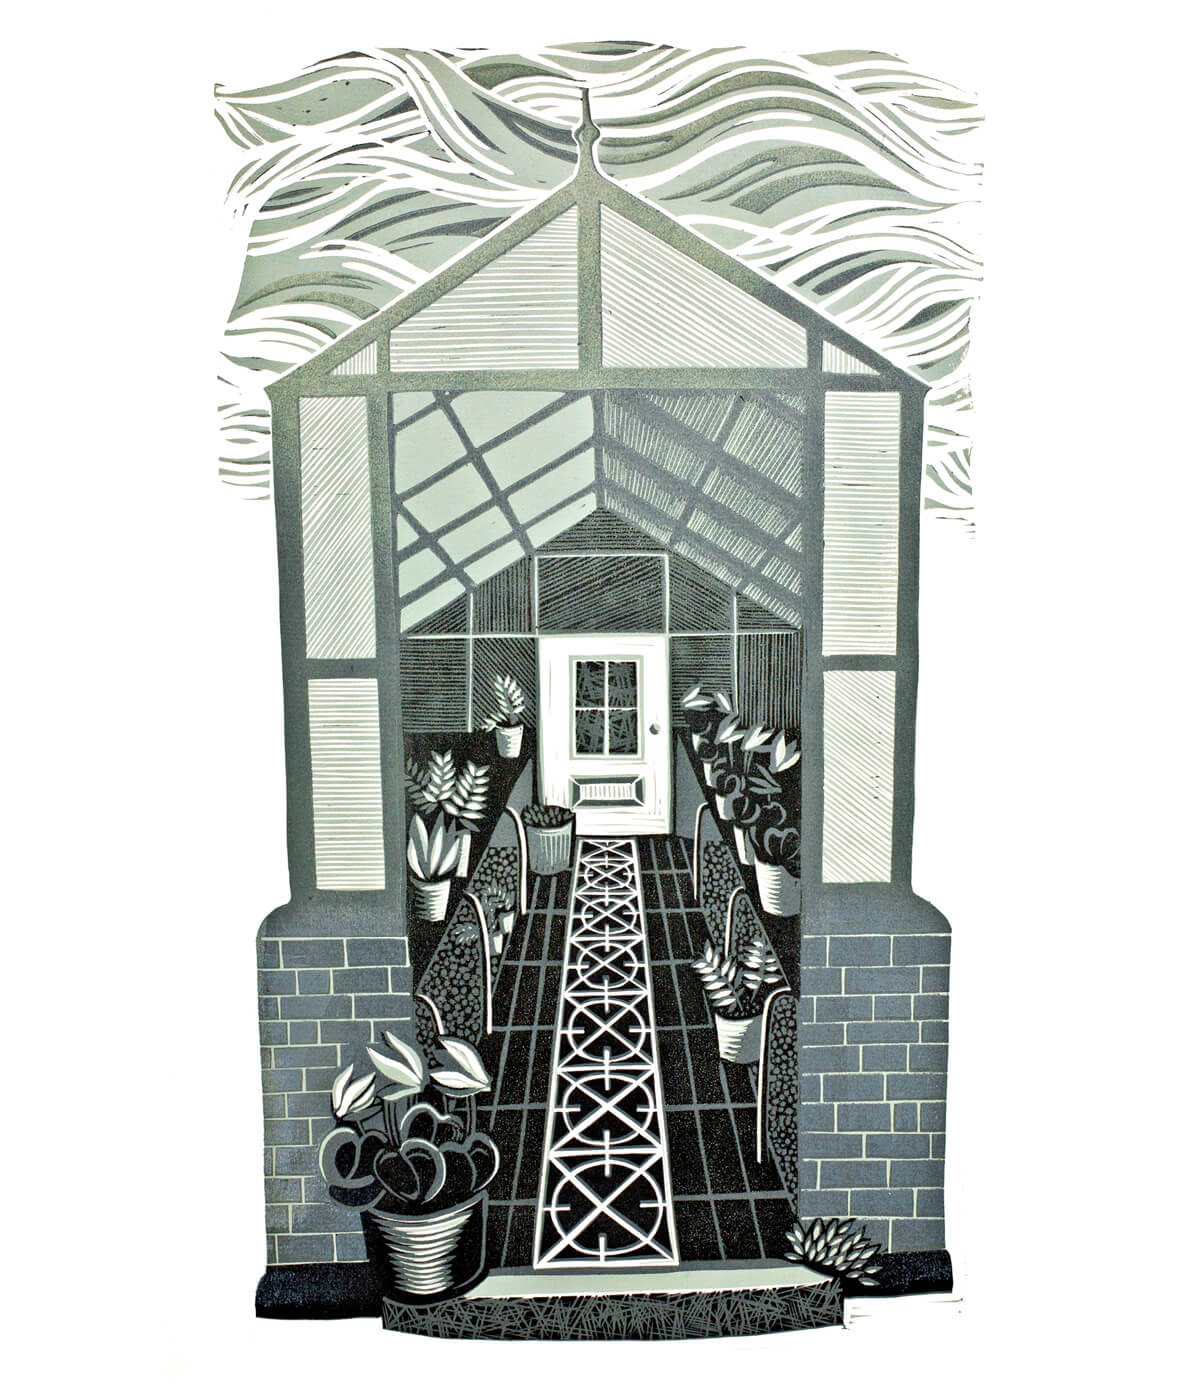 Greenhouse II, linocut print by Sarah Kirby